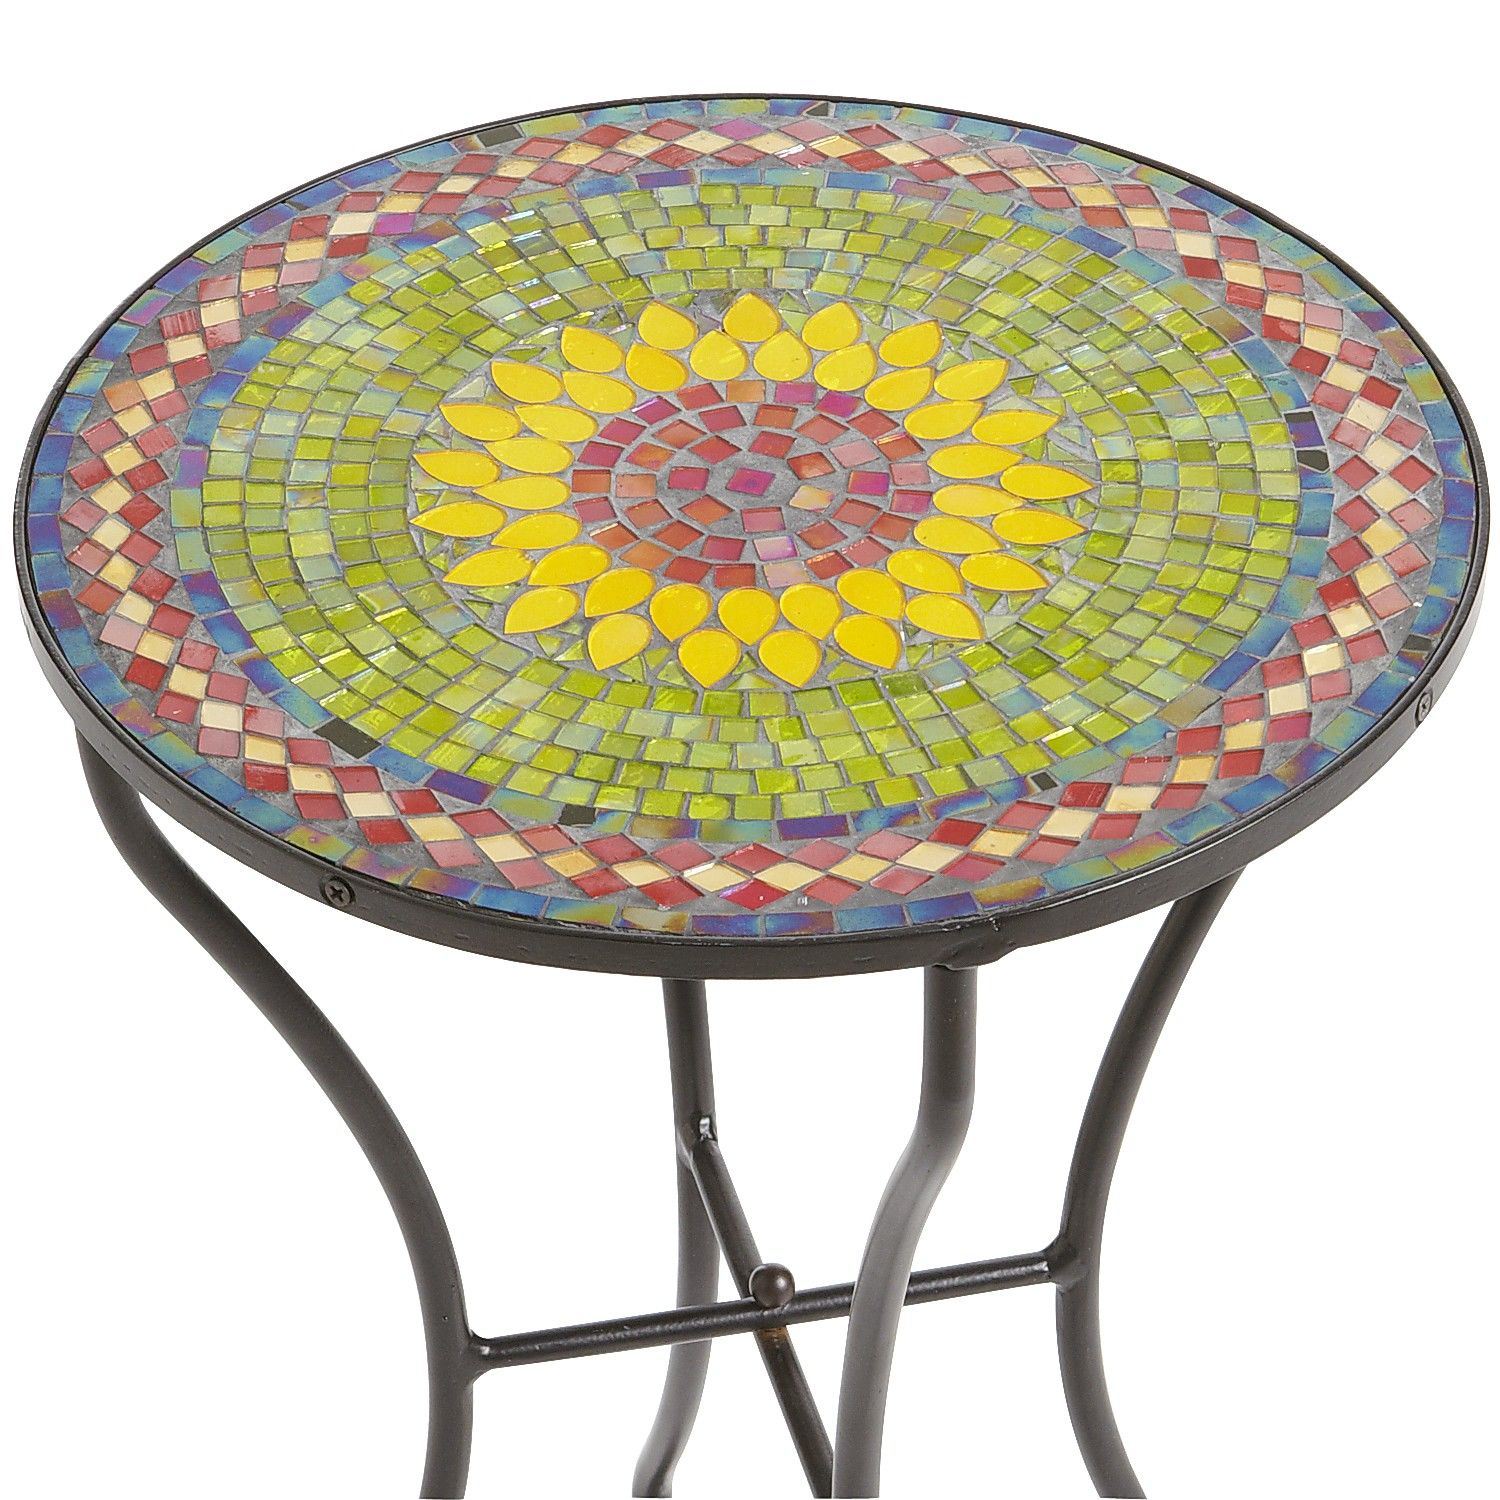 sunflower mosaic accent table pier imports bombay tables outdoor stone nautical ornaments washer dryer narrow sofas for small spaces marble top coffee toronto screw sofa legs